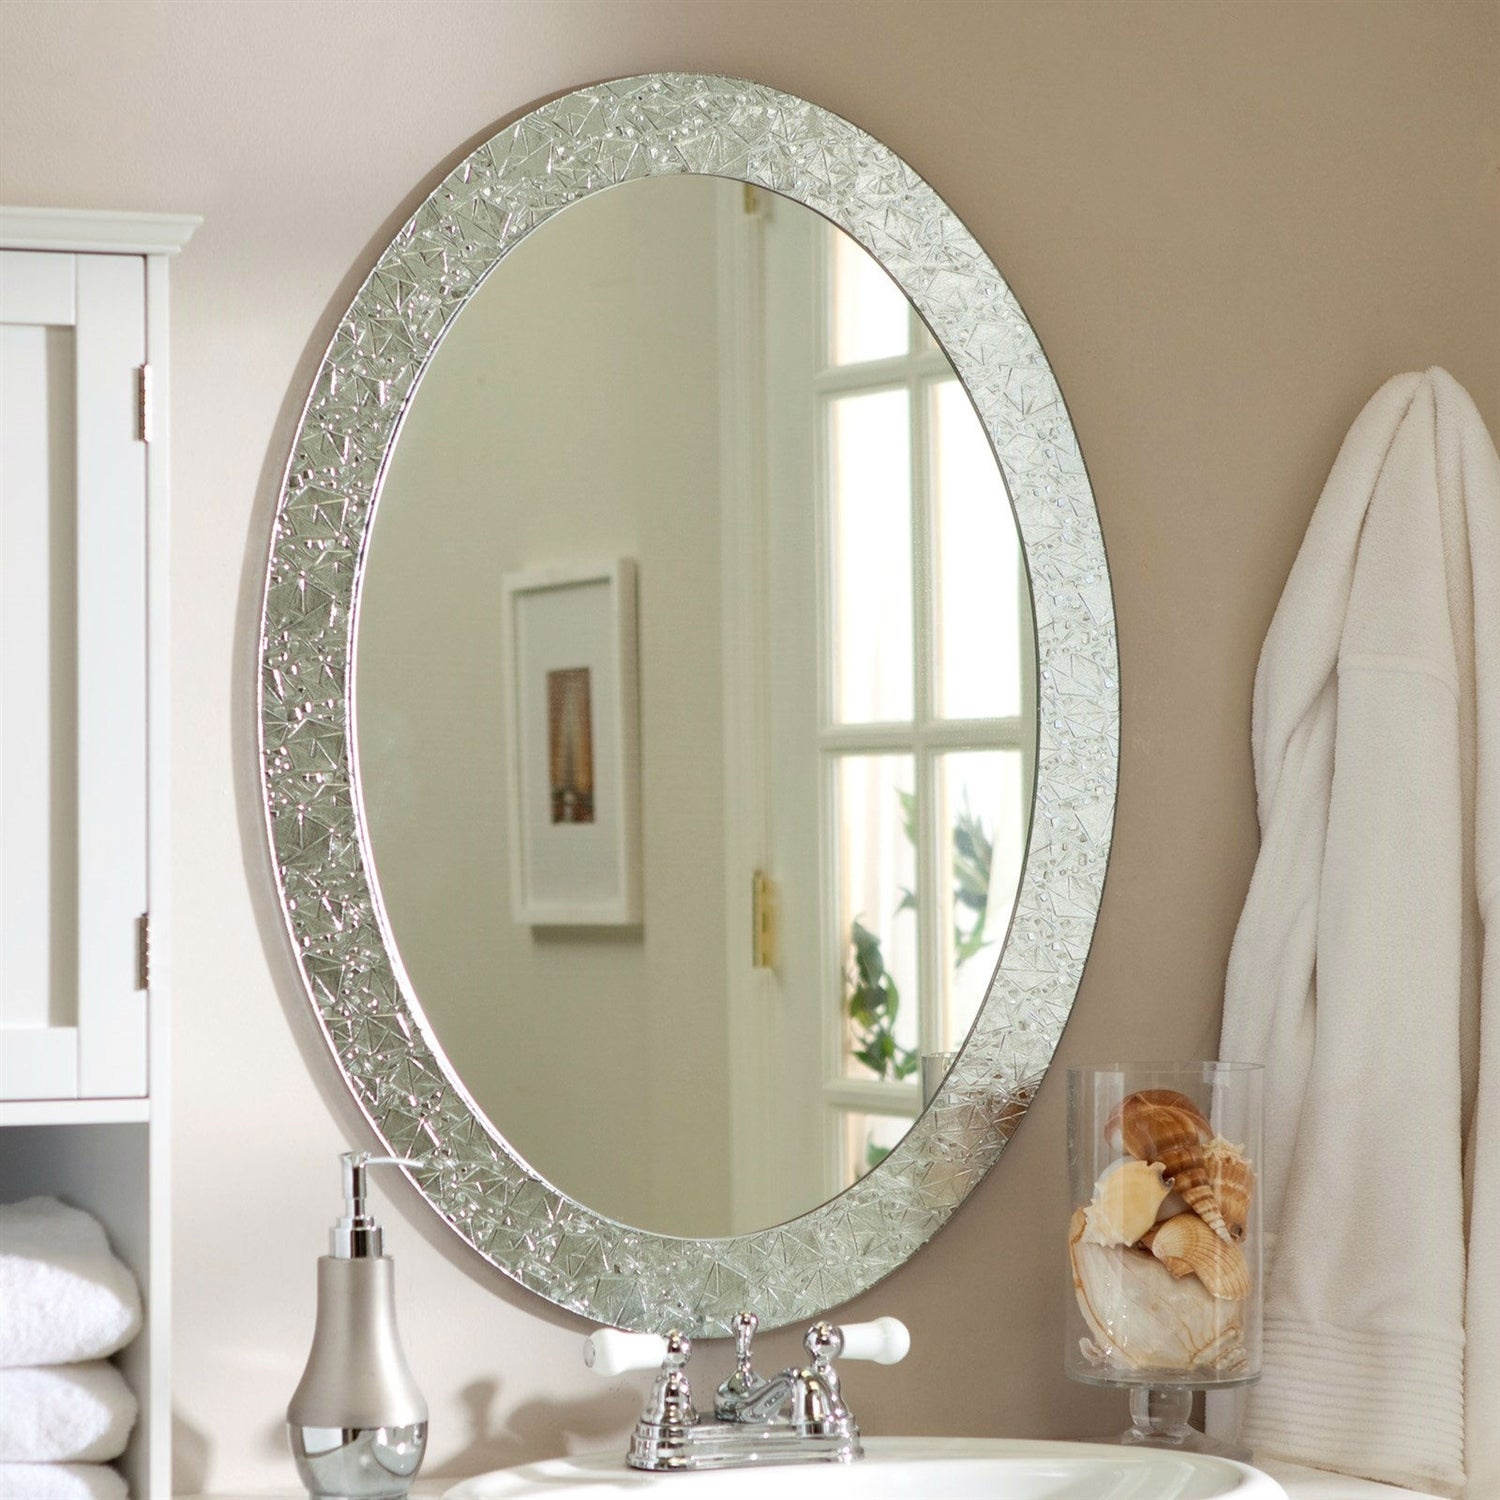 Oval Frame Less Bathroom Vanity Wall Mirror With Elegant Crystal Look Border 31 5l X 23 5w X 5d In On Sale Overstock 29084510